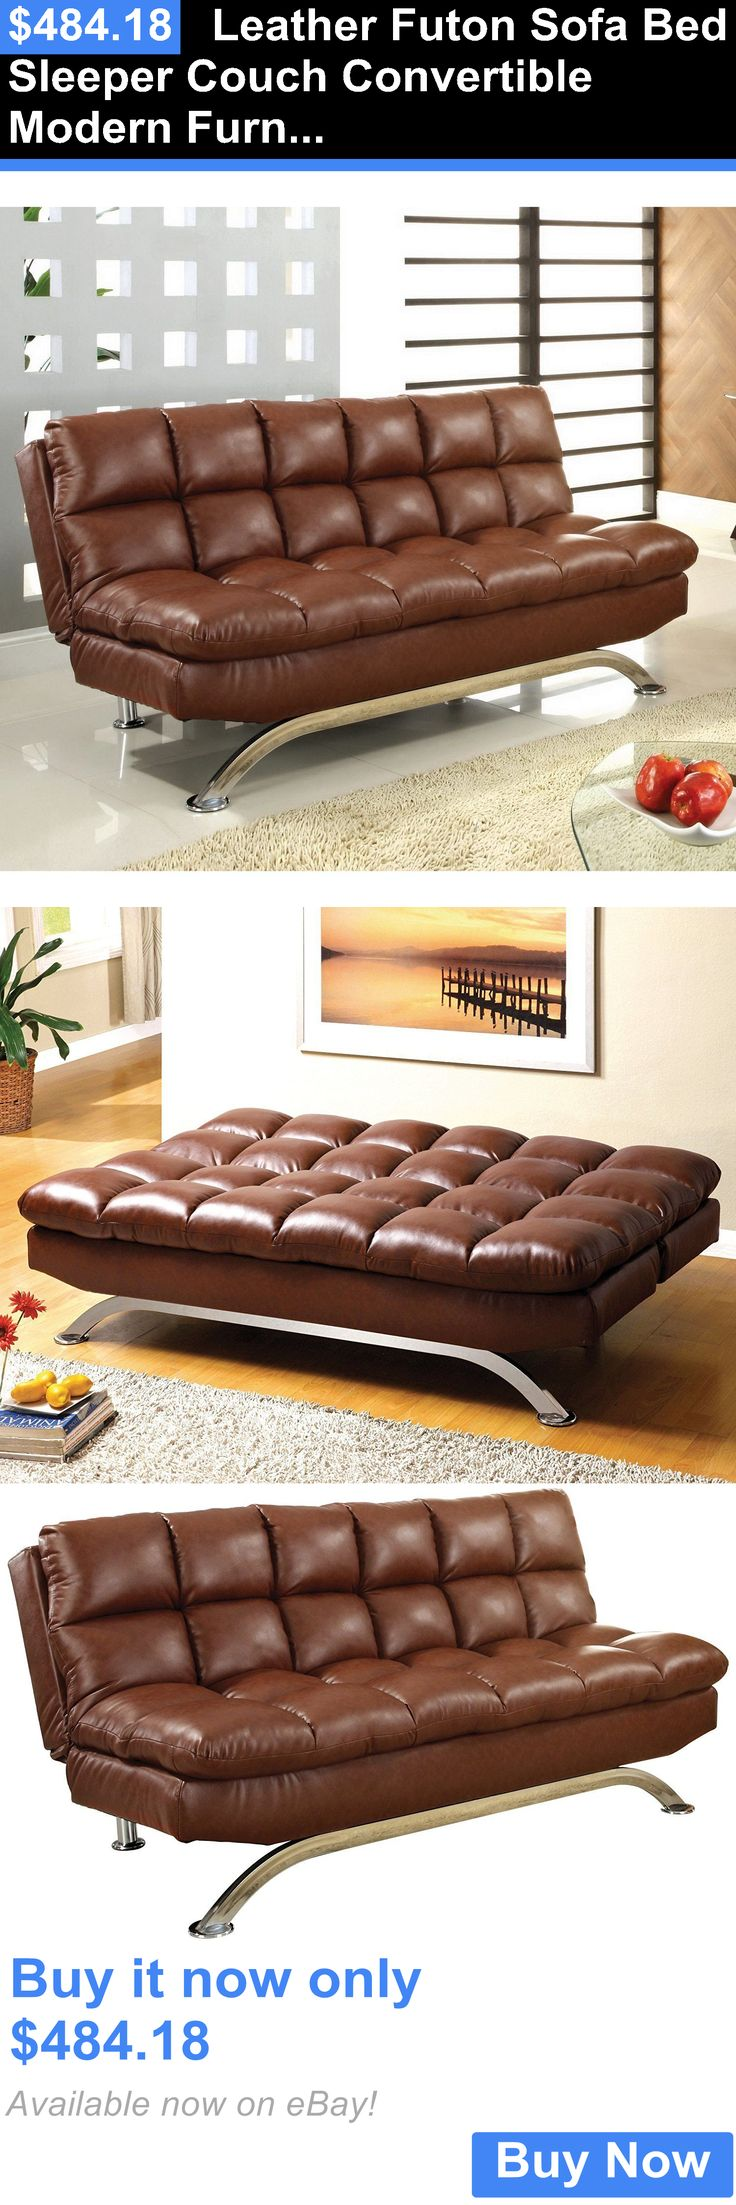 best 20  modern futon mattresses ideas on pinterest   sofa beds sofa with bed buy futon   furniture shop  rh   ekonomikmobilyacarsisi